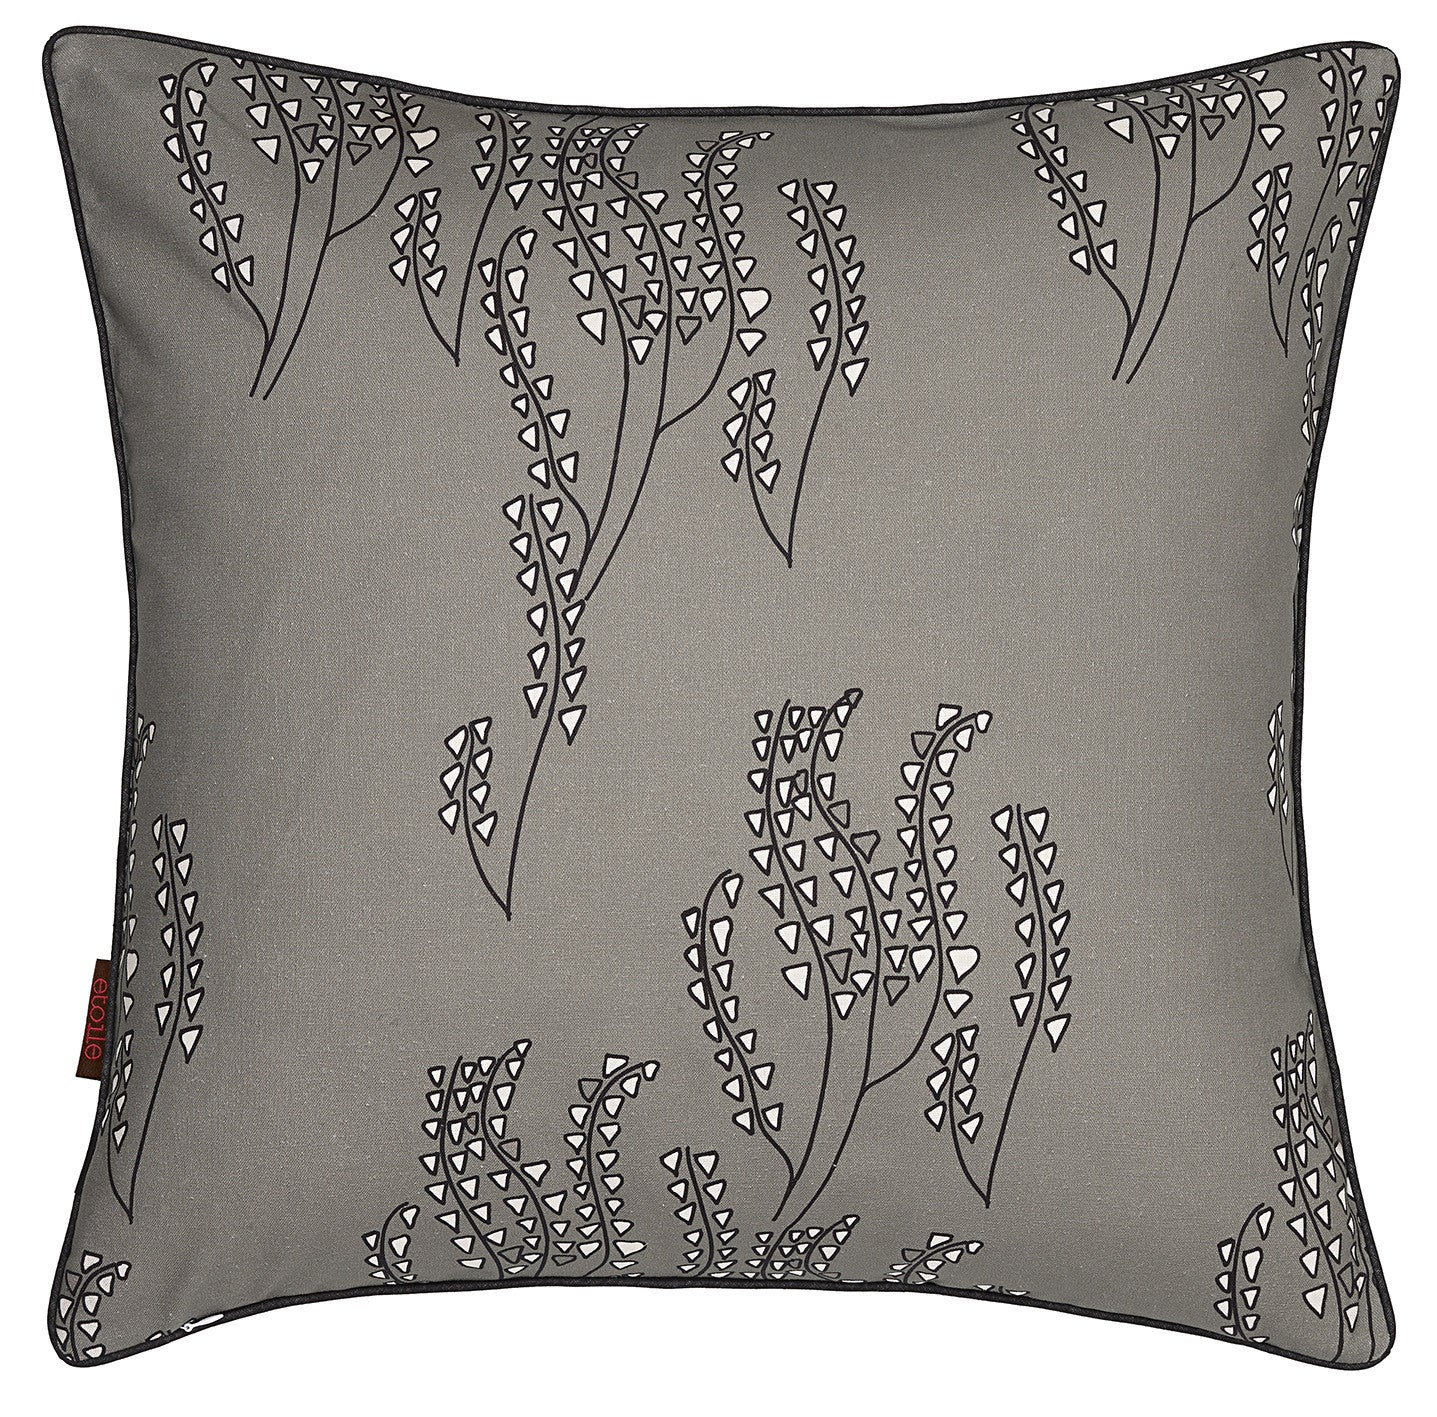 Yuma Grass Pattern Linen Cotton Throw Pillow in Light Dove Grey ships from Canada worldwide including the USA